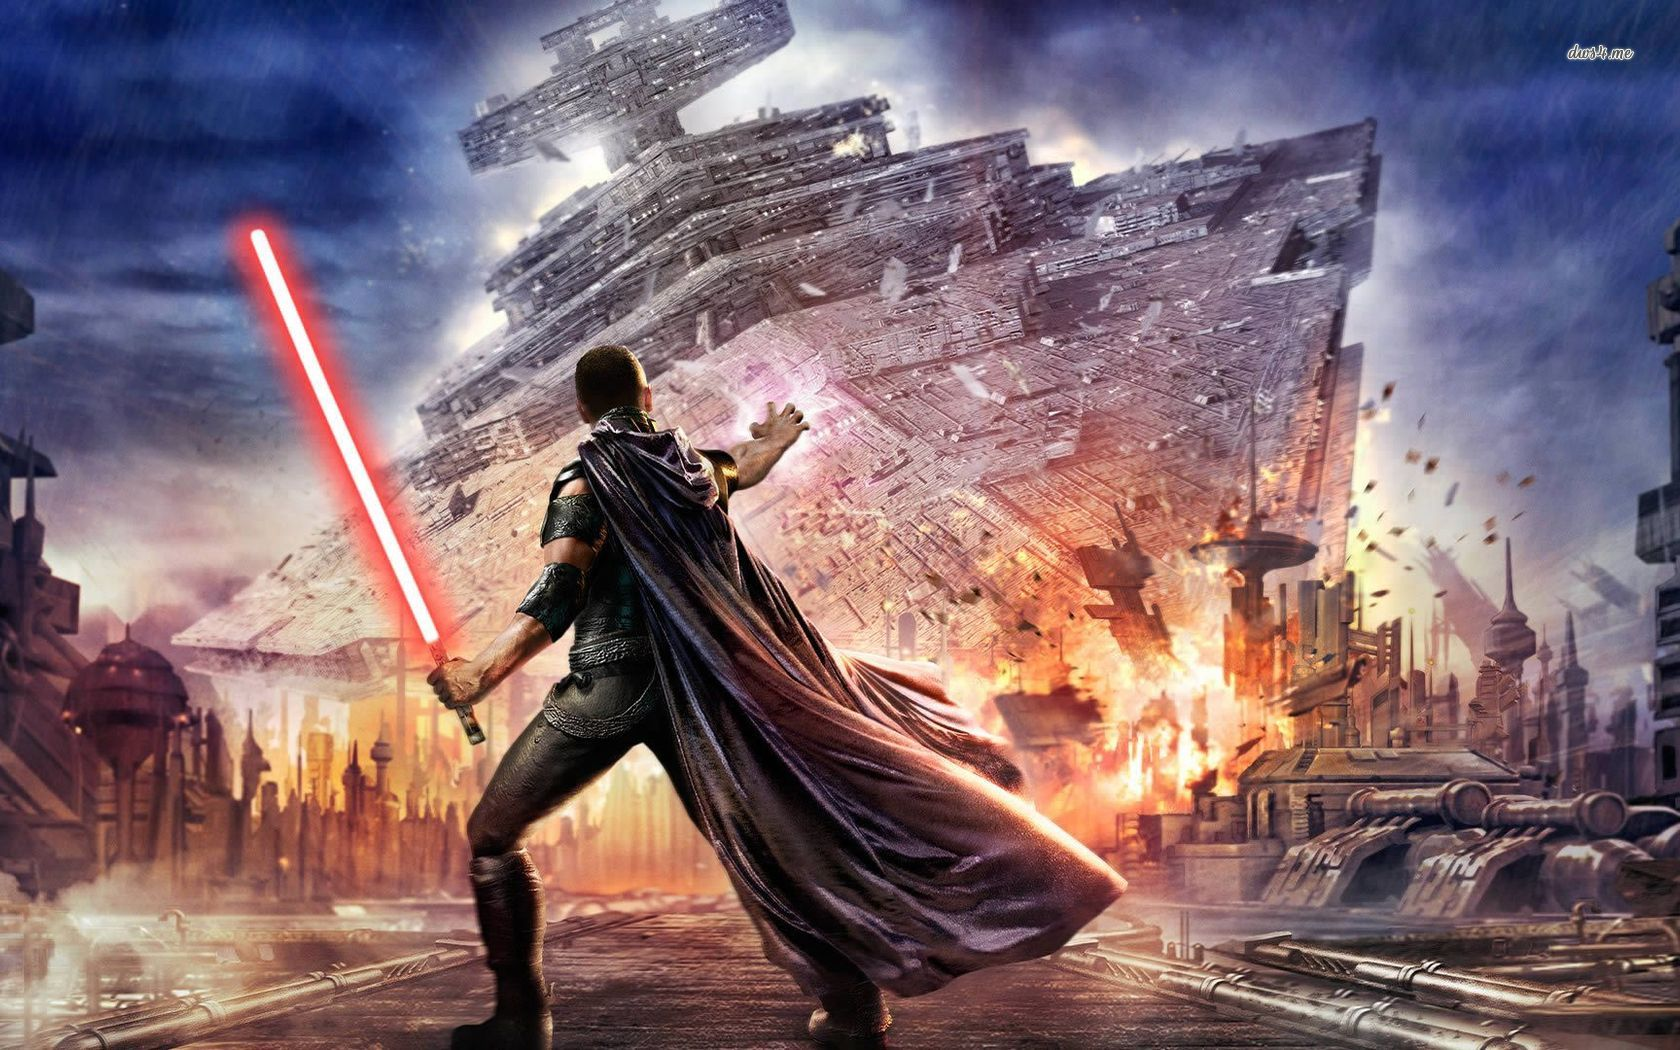 Download Star Wars Force Unleashed Wallpaper Gallery